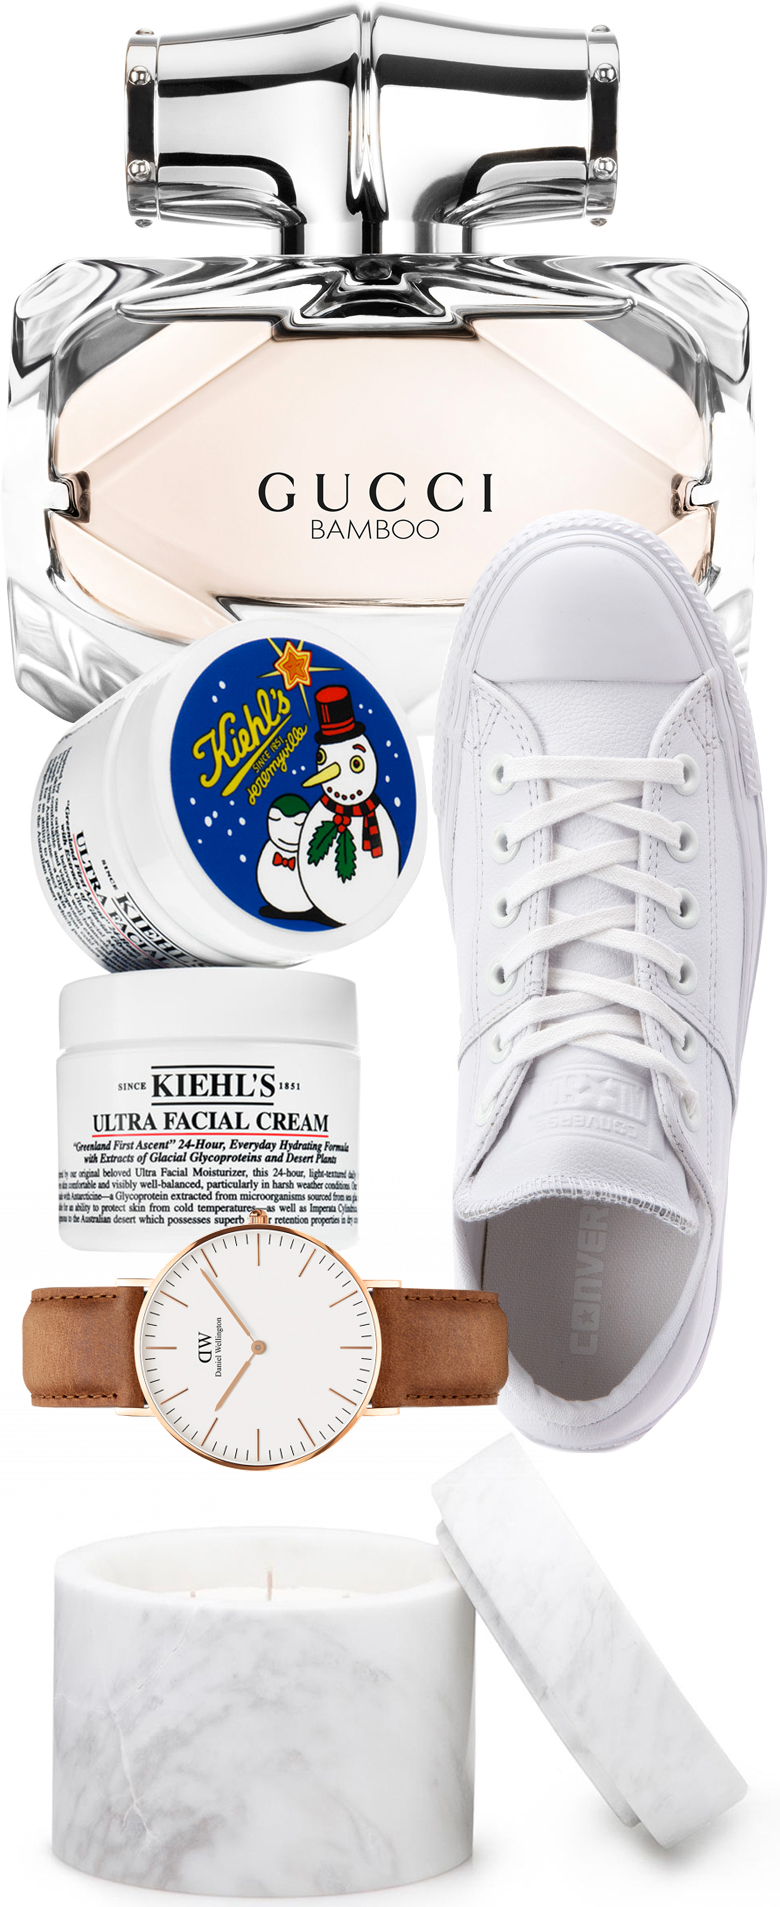 The Ultimate Gift Guide For Her: Simple & Chic